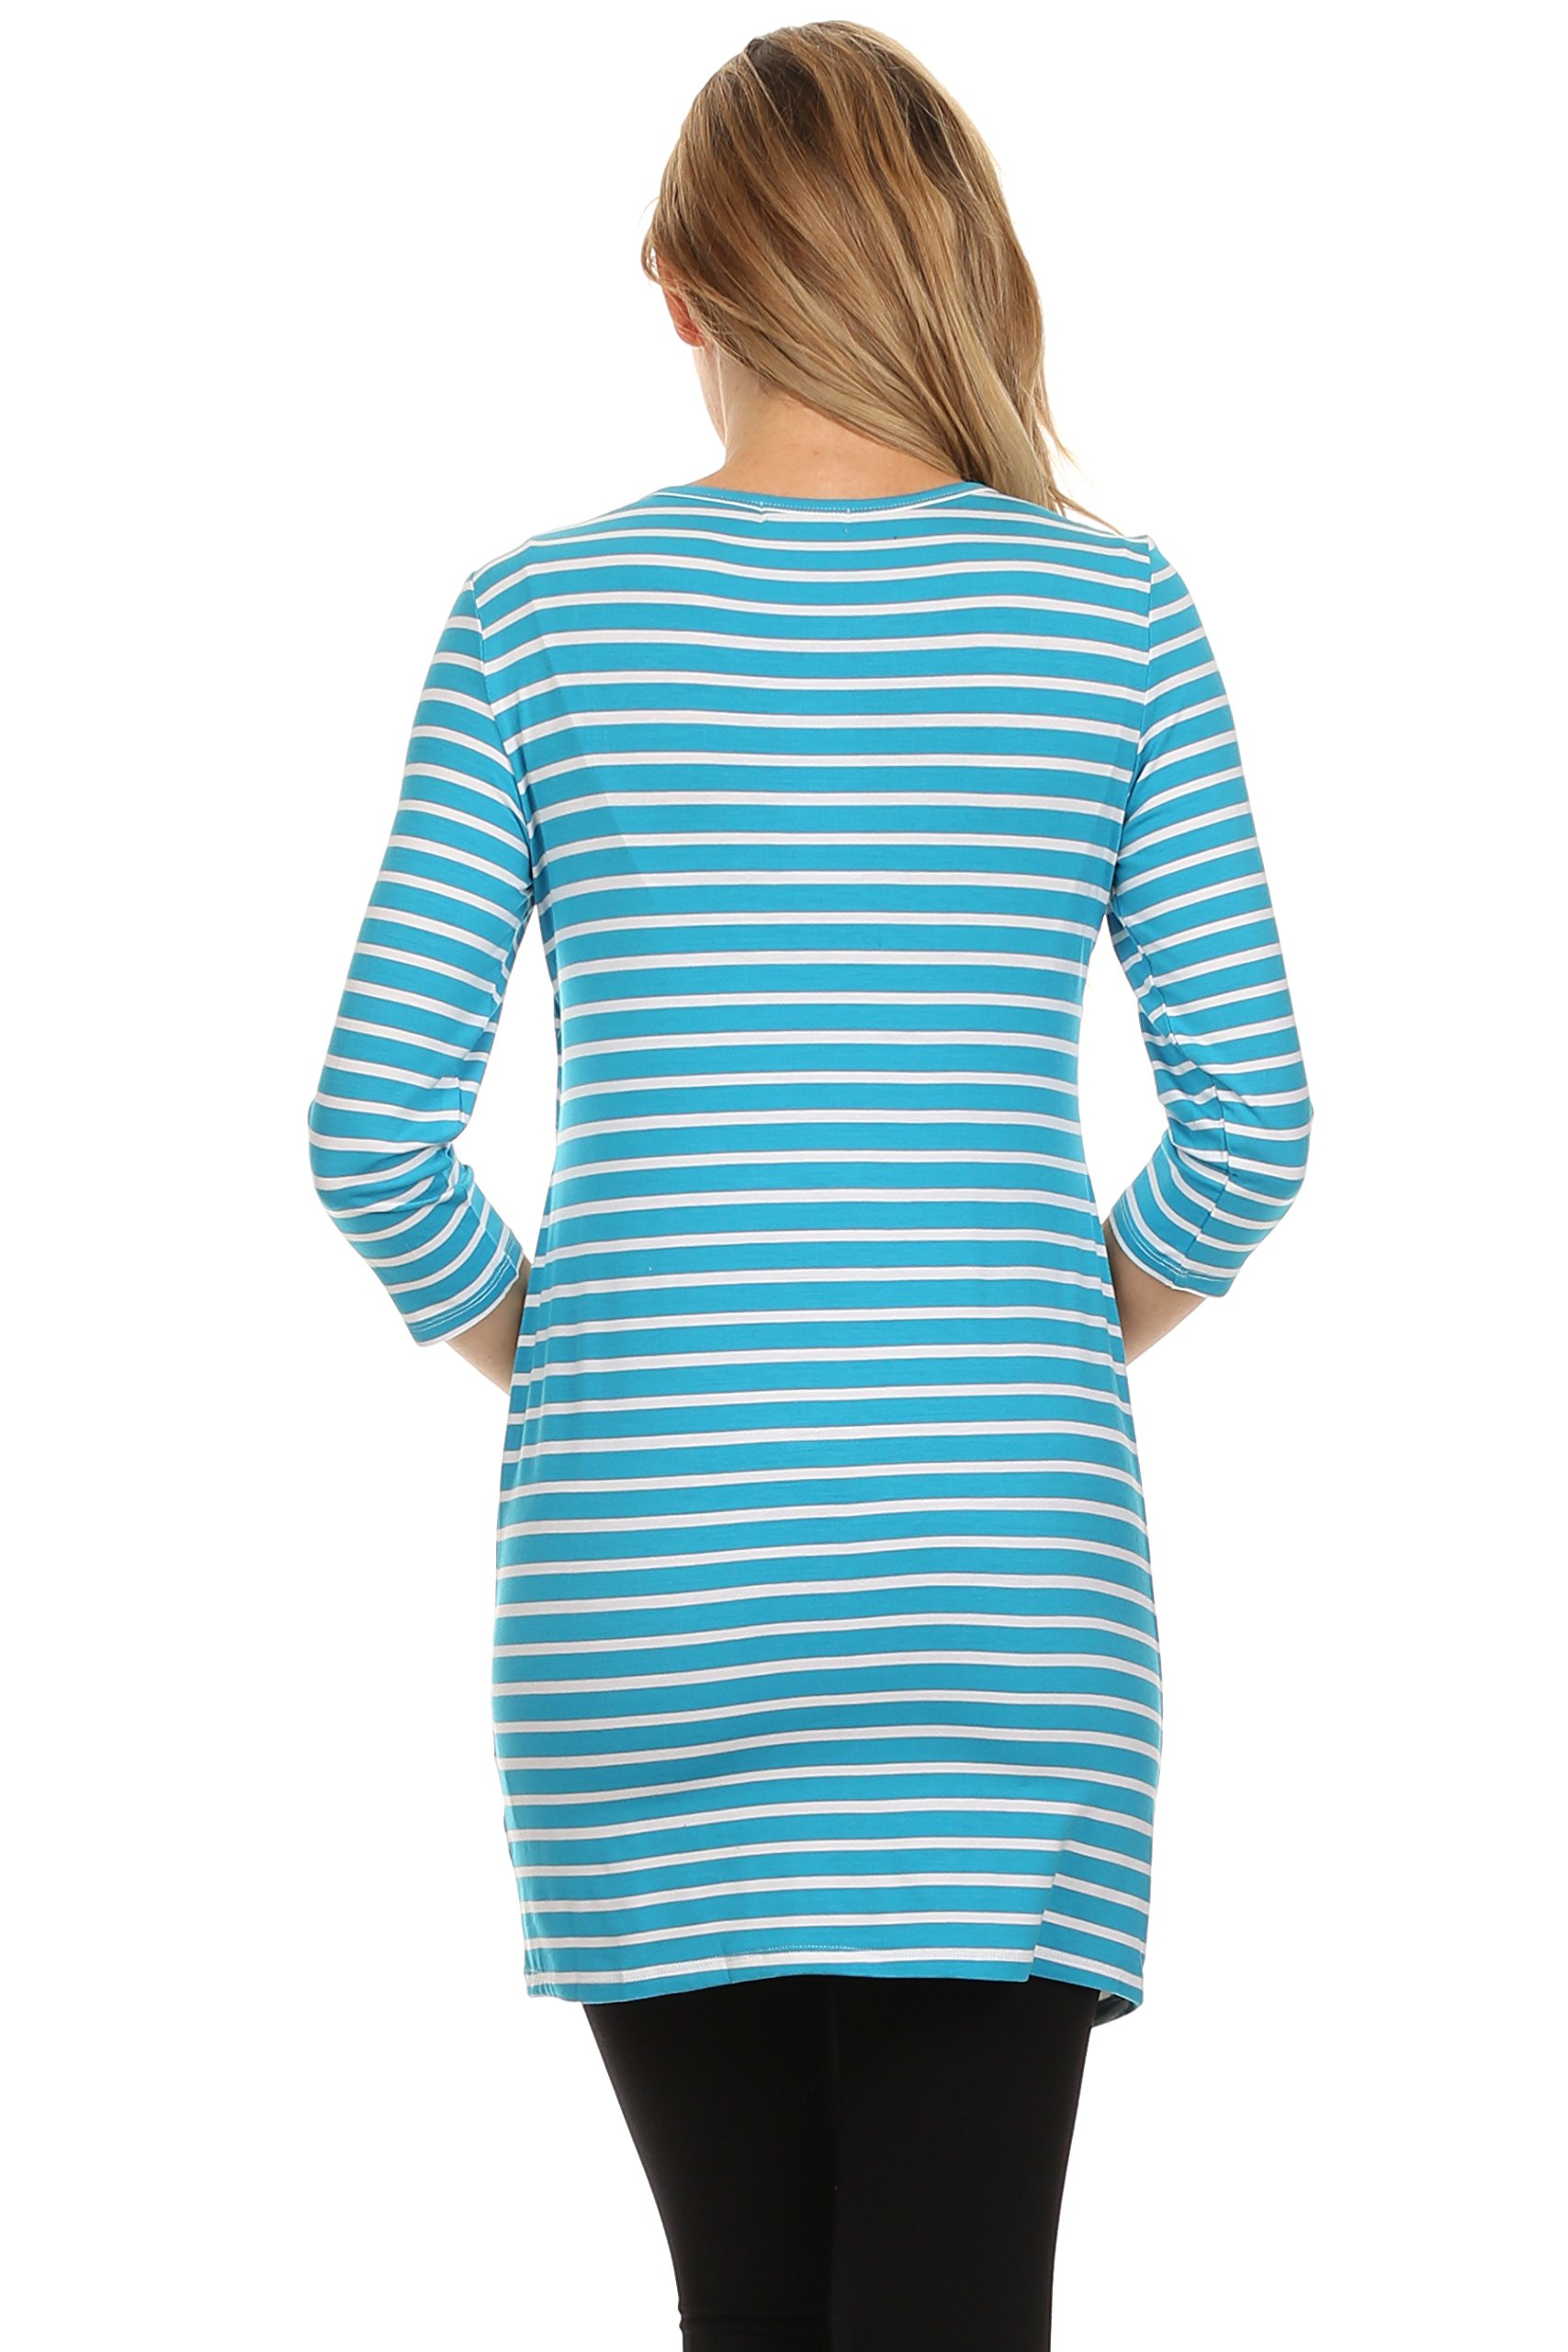 BellyMoms Bailey Stripe Maternity and Nursing Top (Blue and White, Medium) by BellyMoms (Image #5)